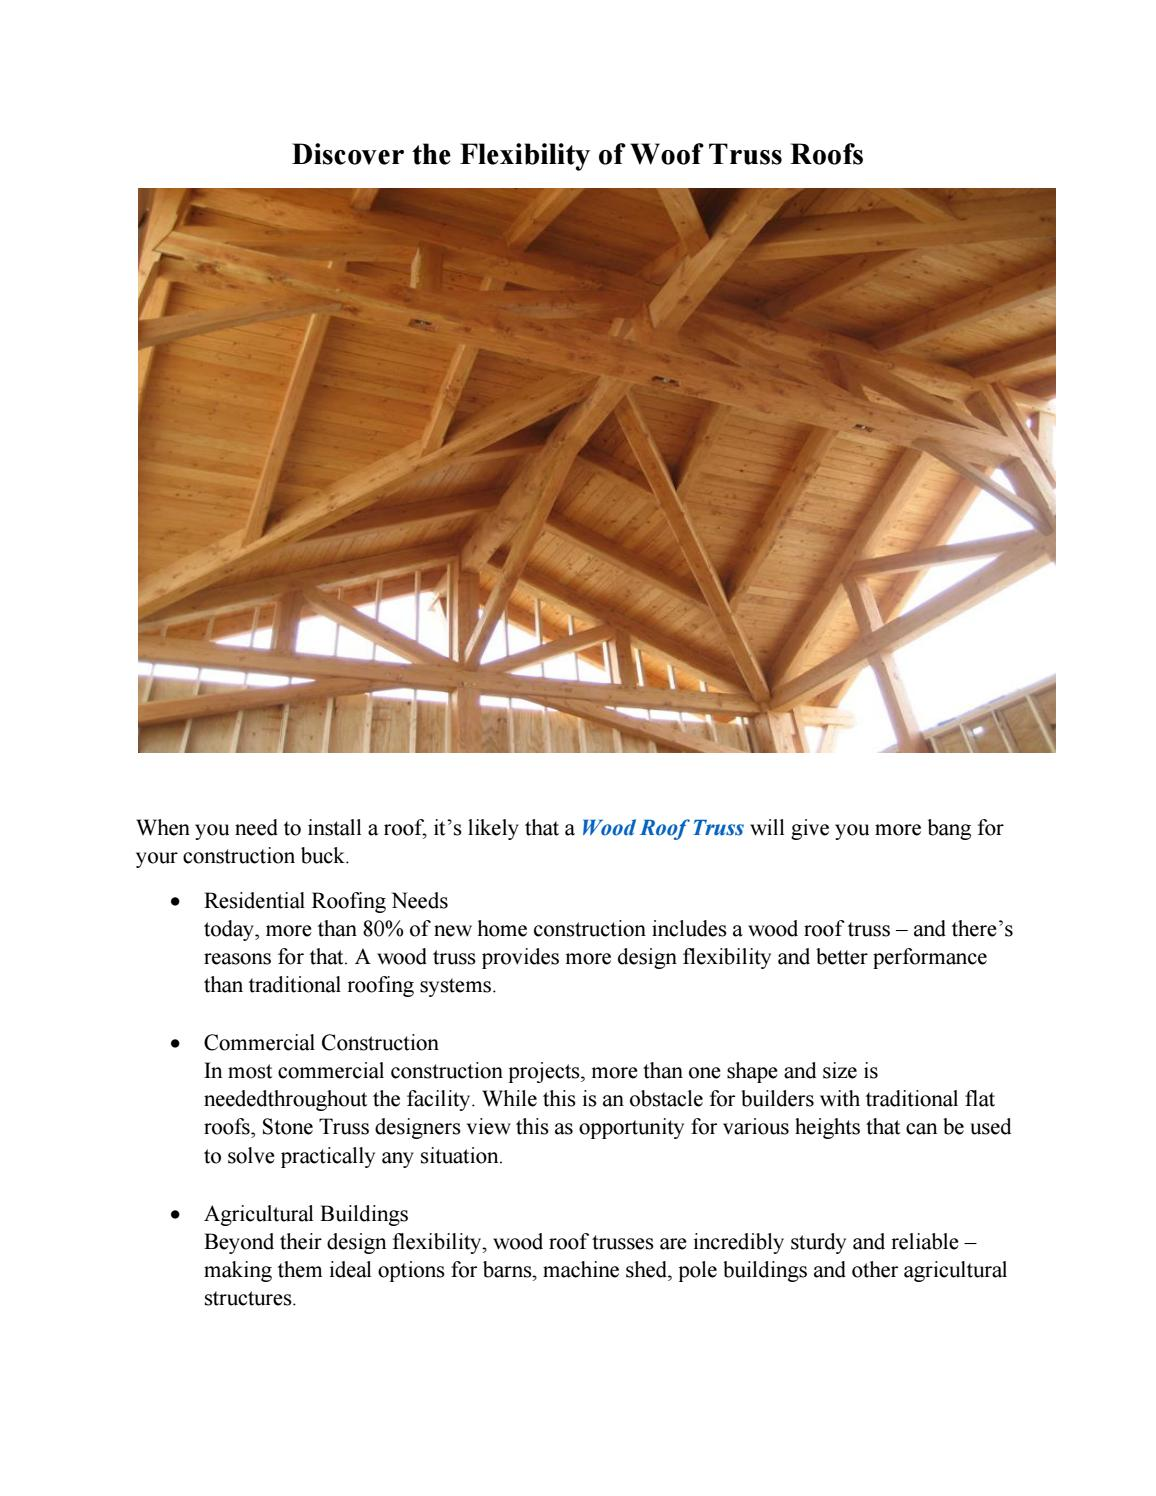 Discover The Flexibility Of Woof Truss Roofs By Trussbuilders Issuu